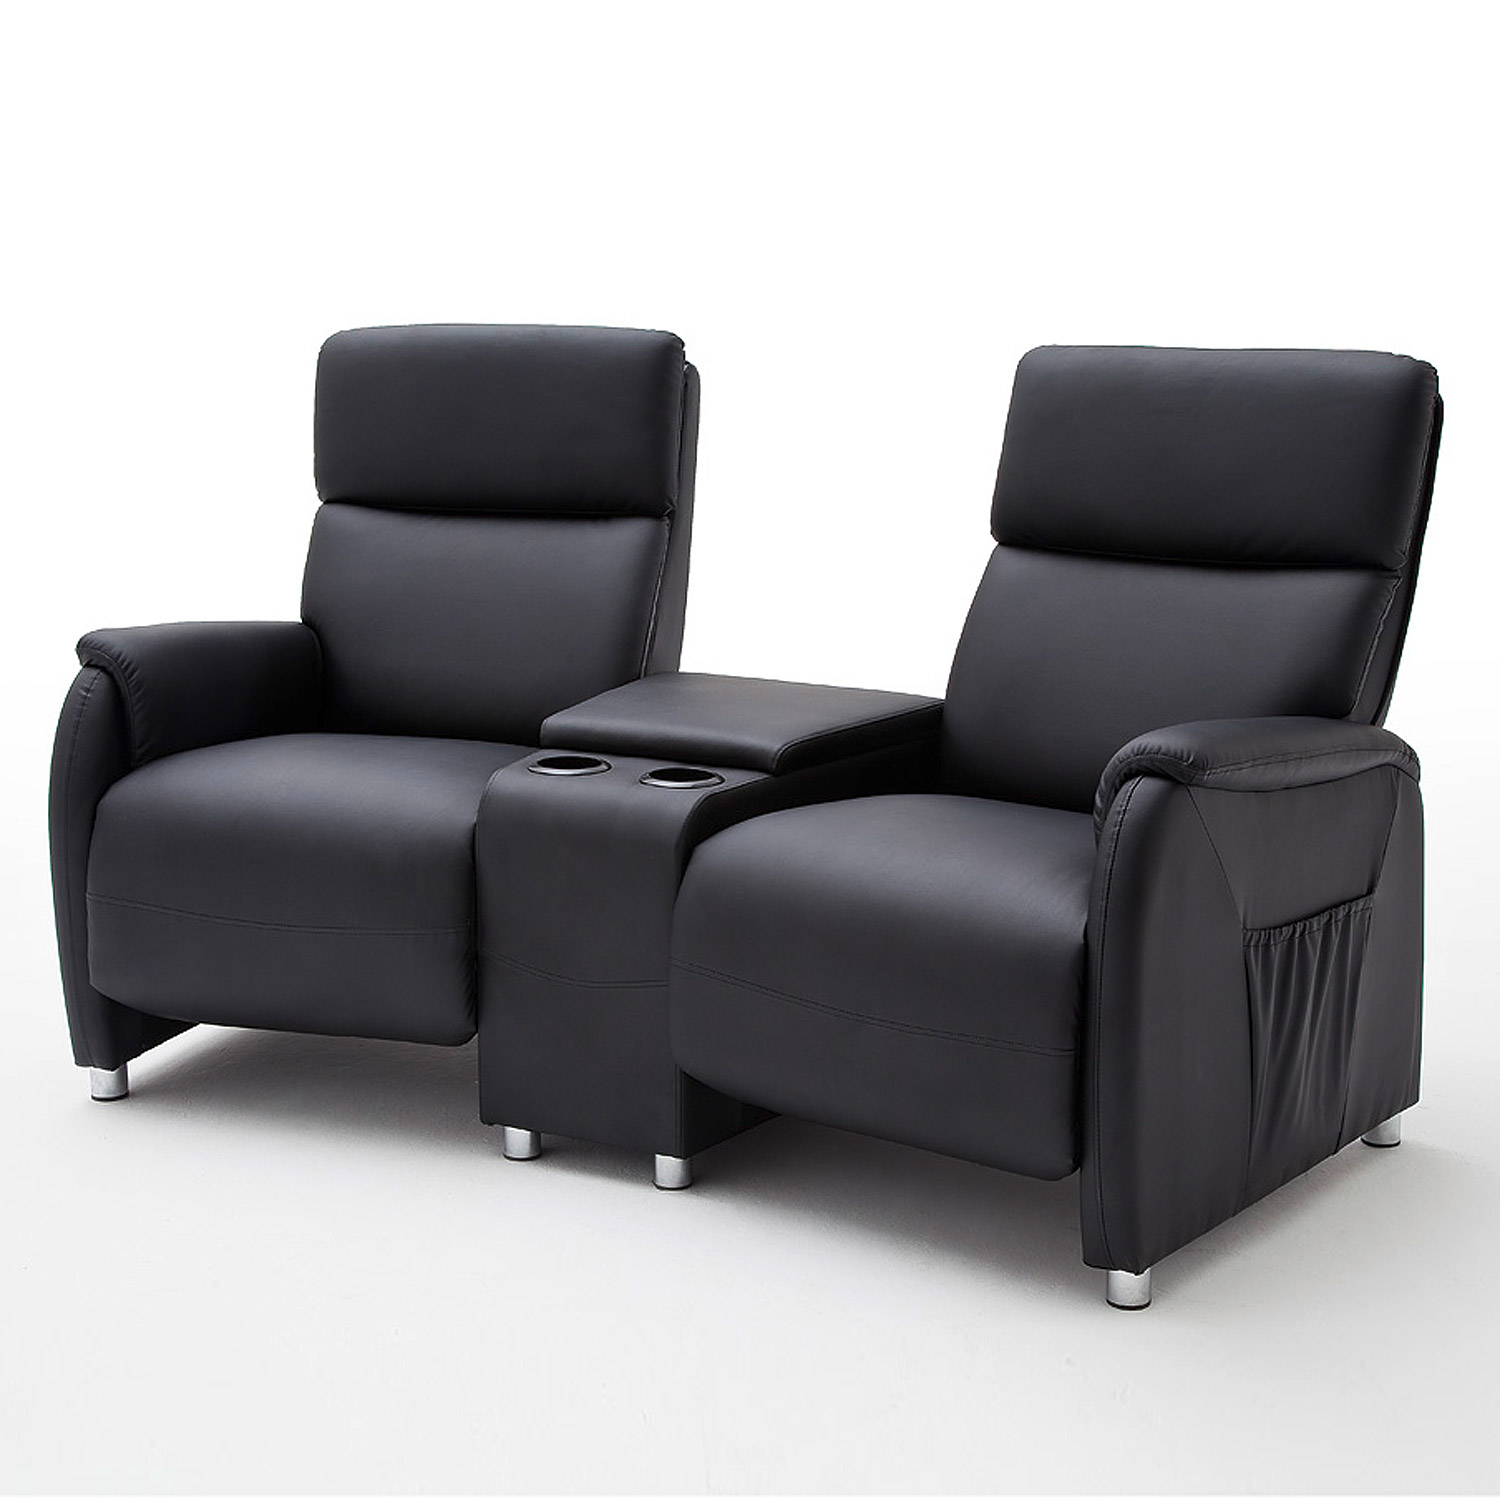 2er Cinema Sessel Kino 2er Sessel Dani Cinema Sofa Lederlook Schwarz Mit